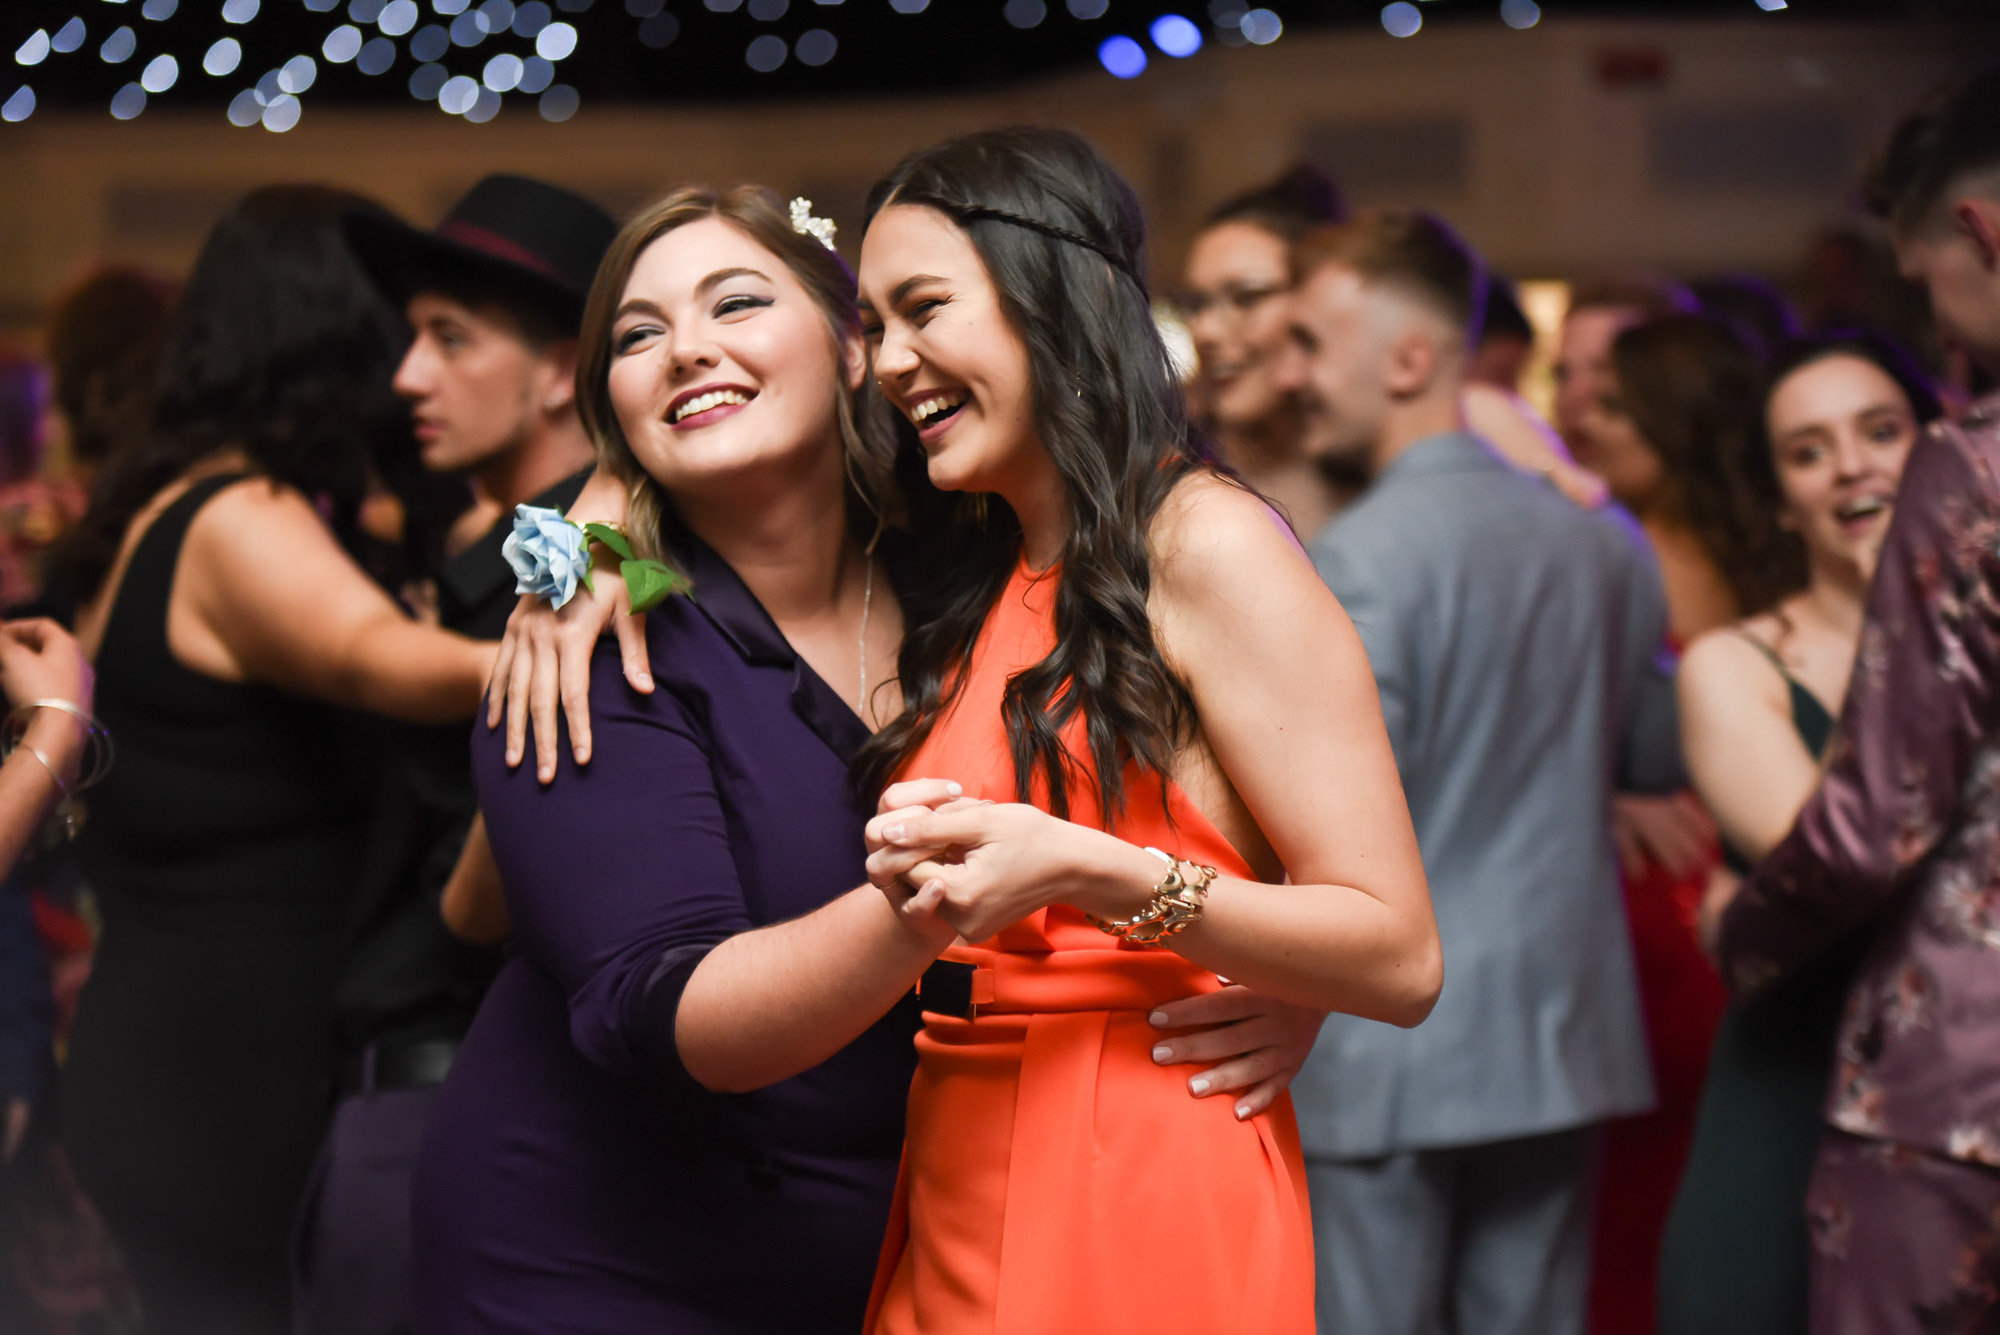 UCLAN_MT_BALL_2019_350.jpg